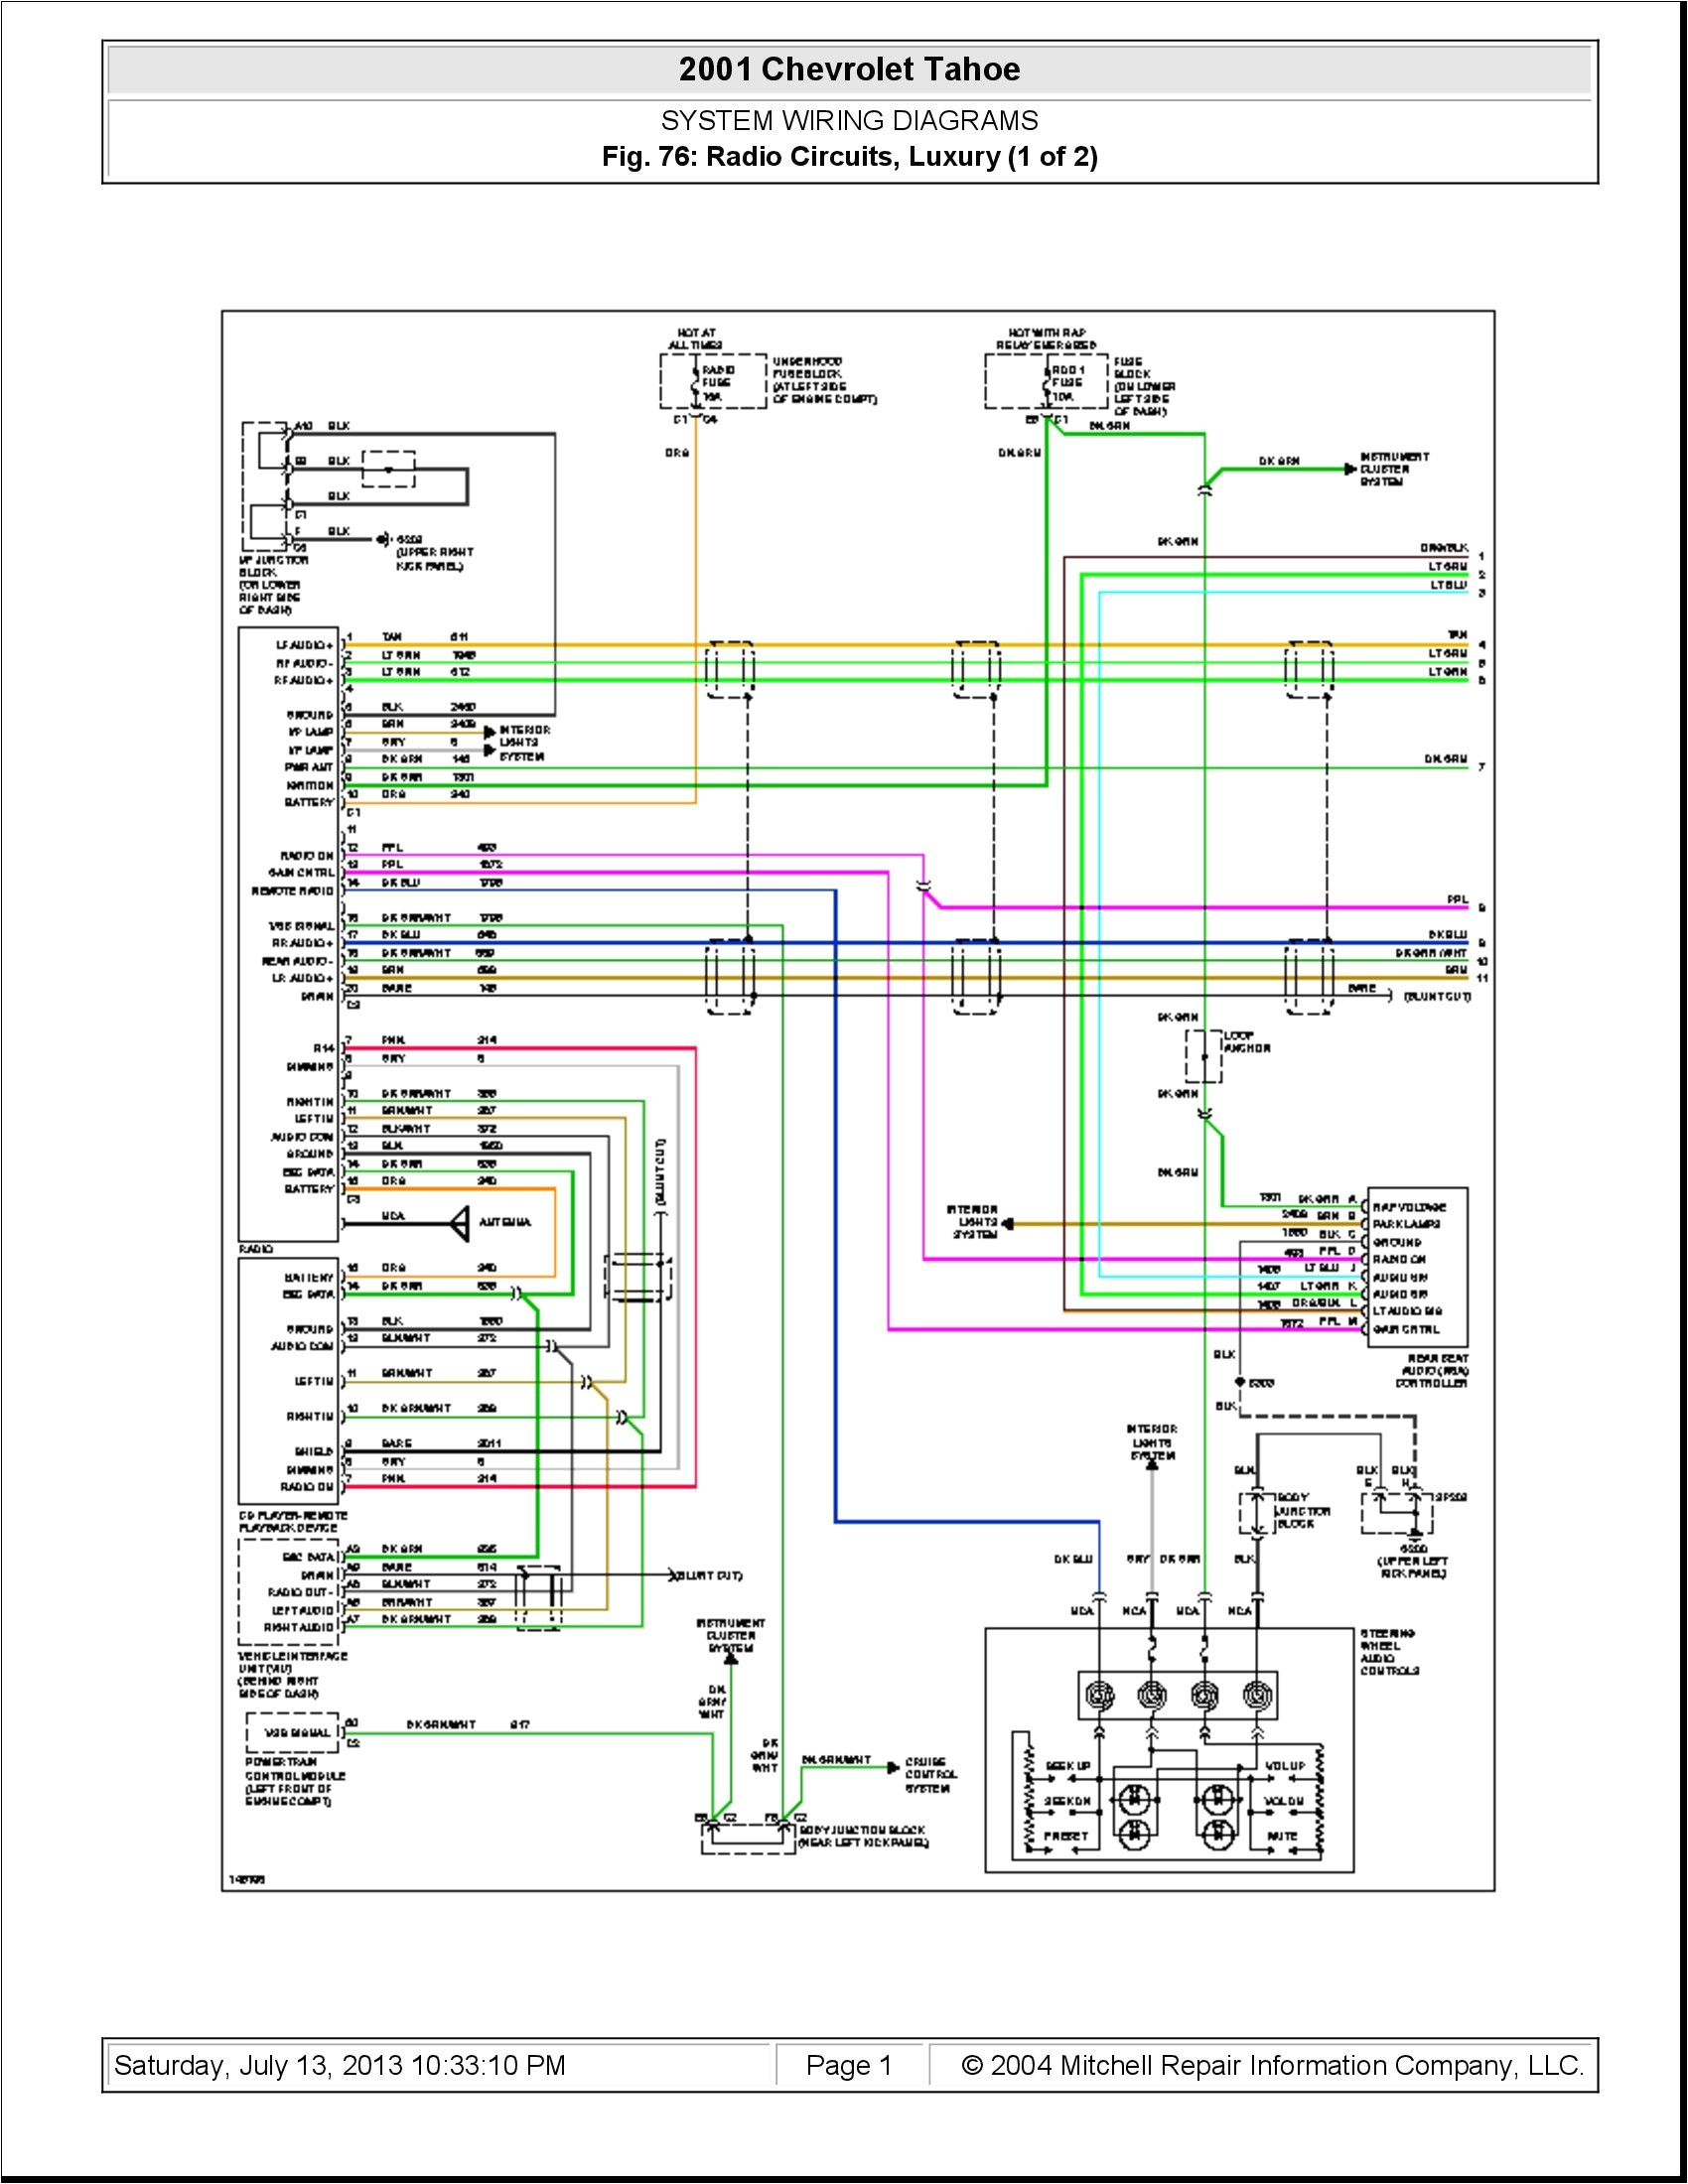 2000 chevy cavalier fuse box free download wiring diagram schematic